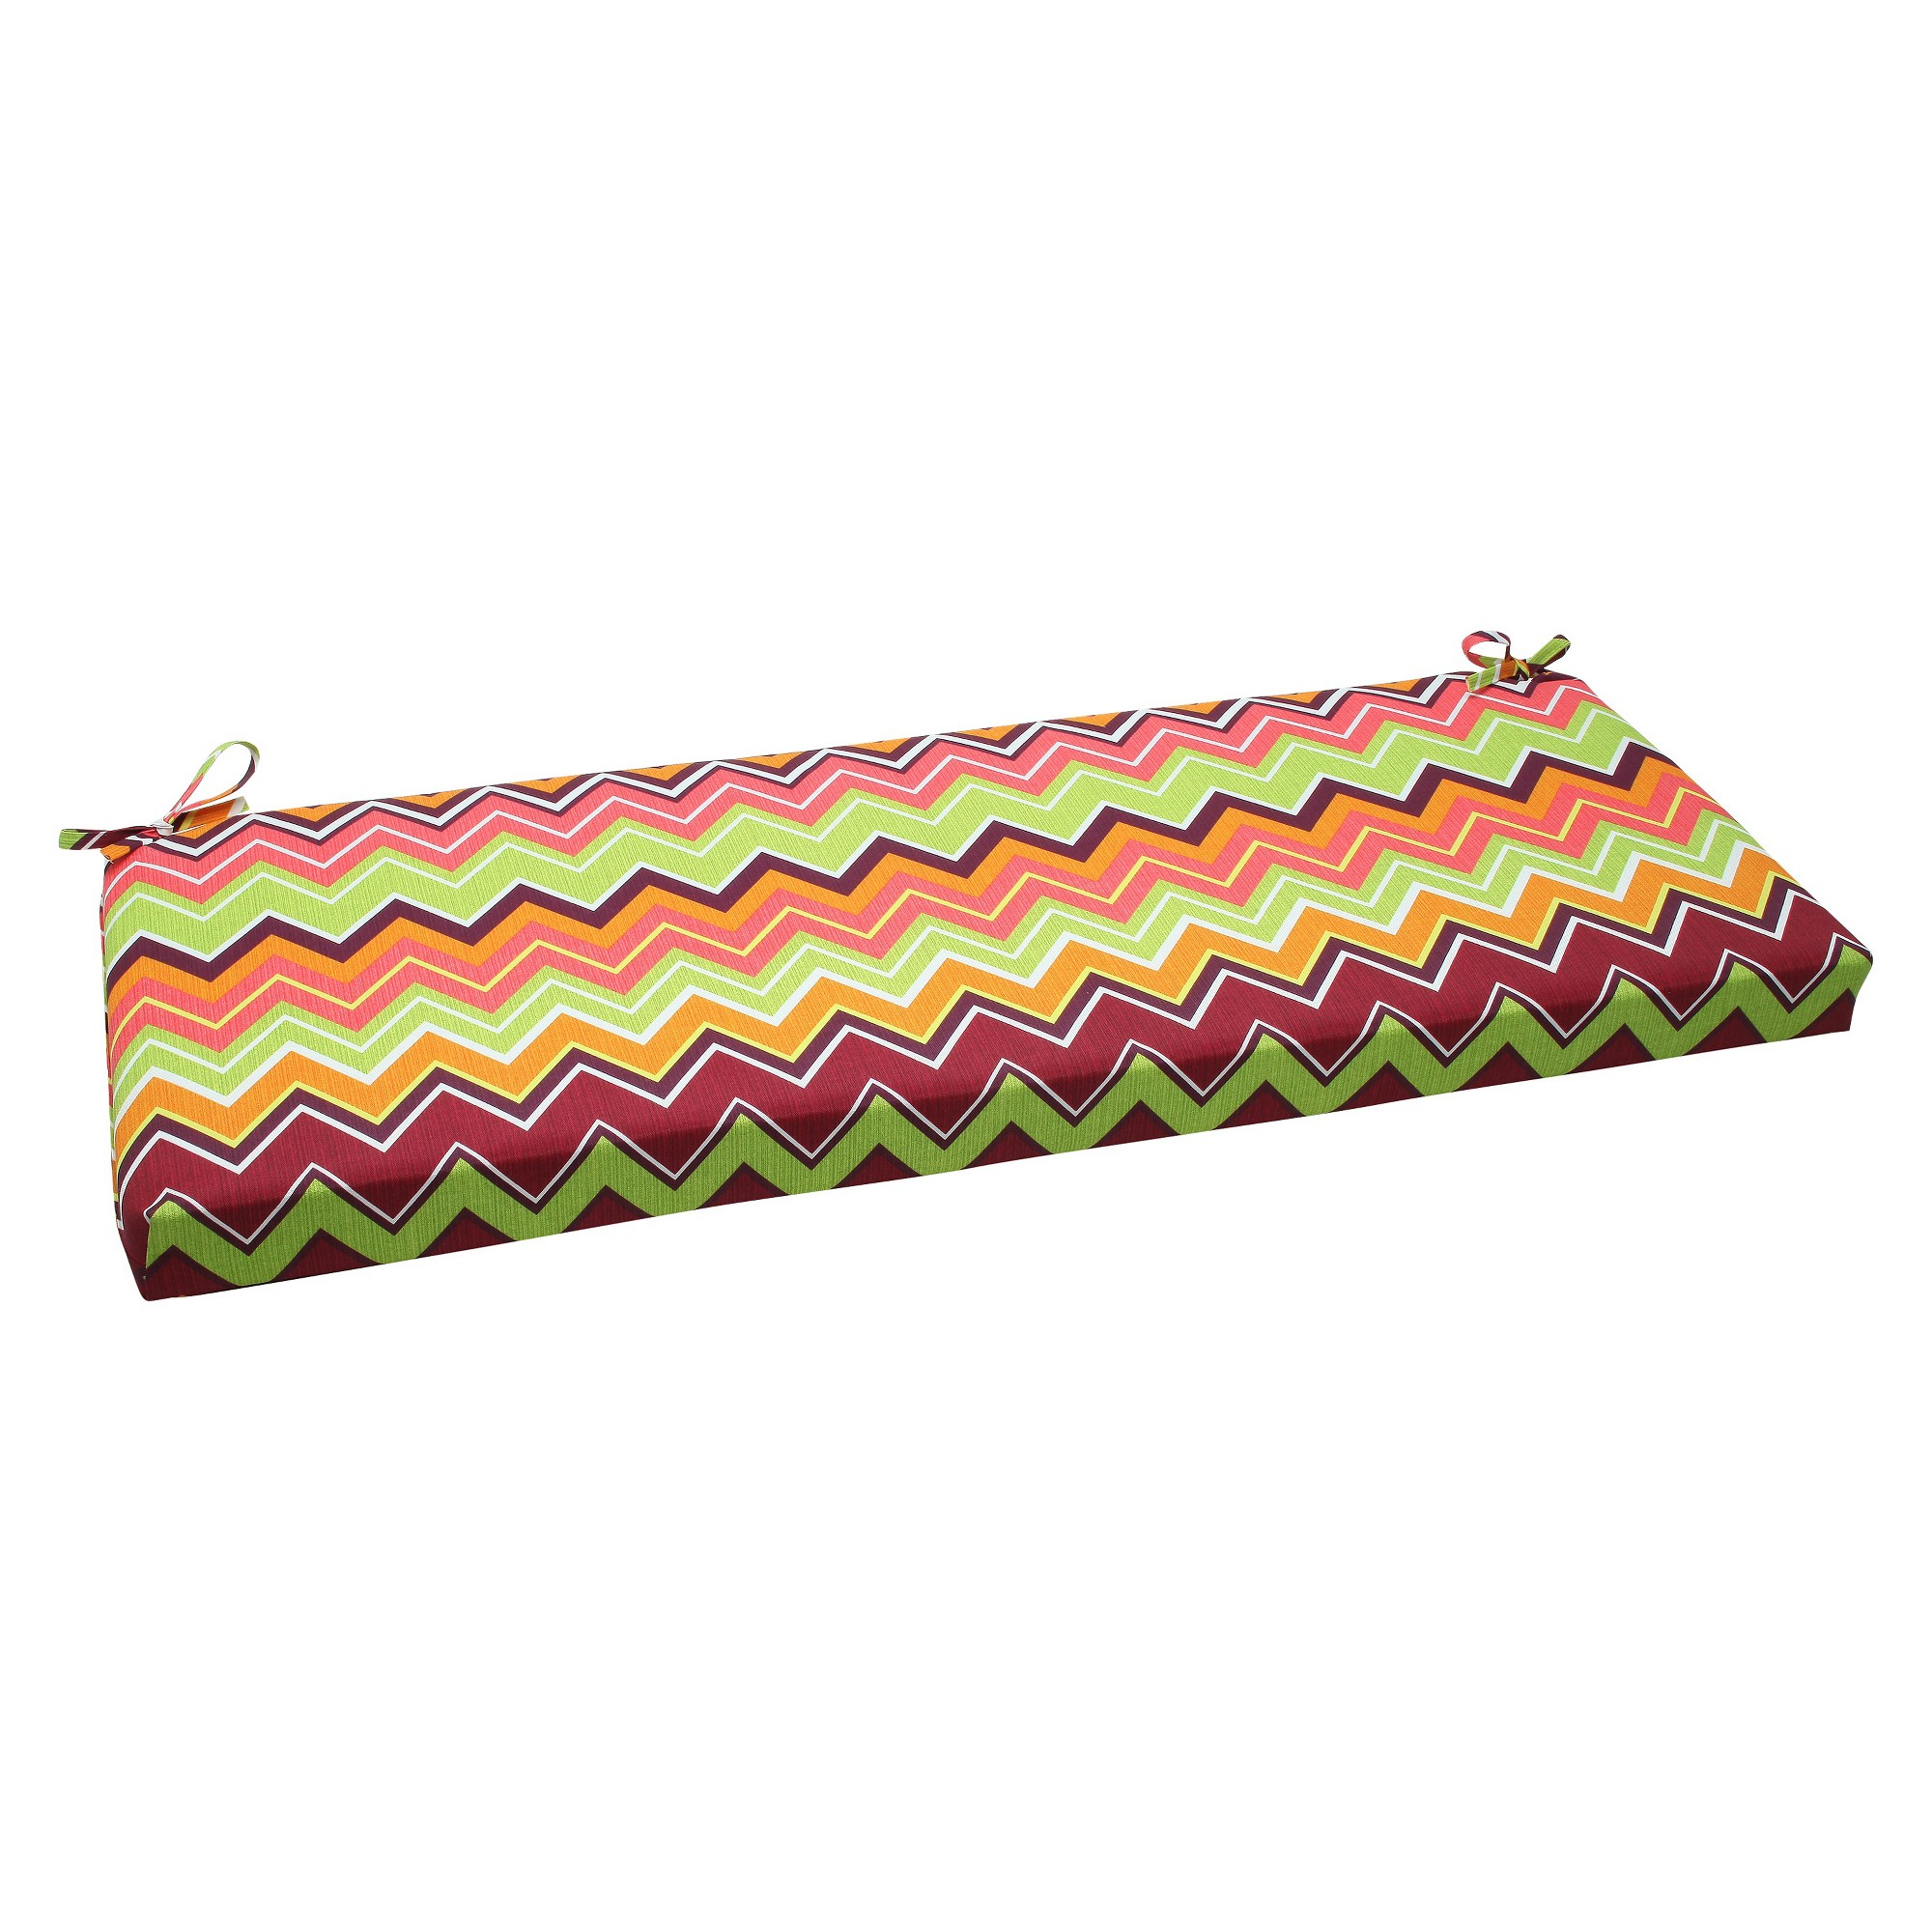 Outdoor seat pillow perfect bench cushion greenpink bench